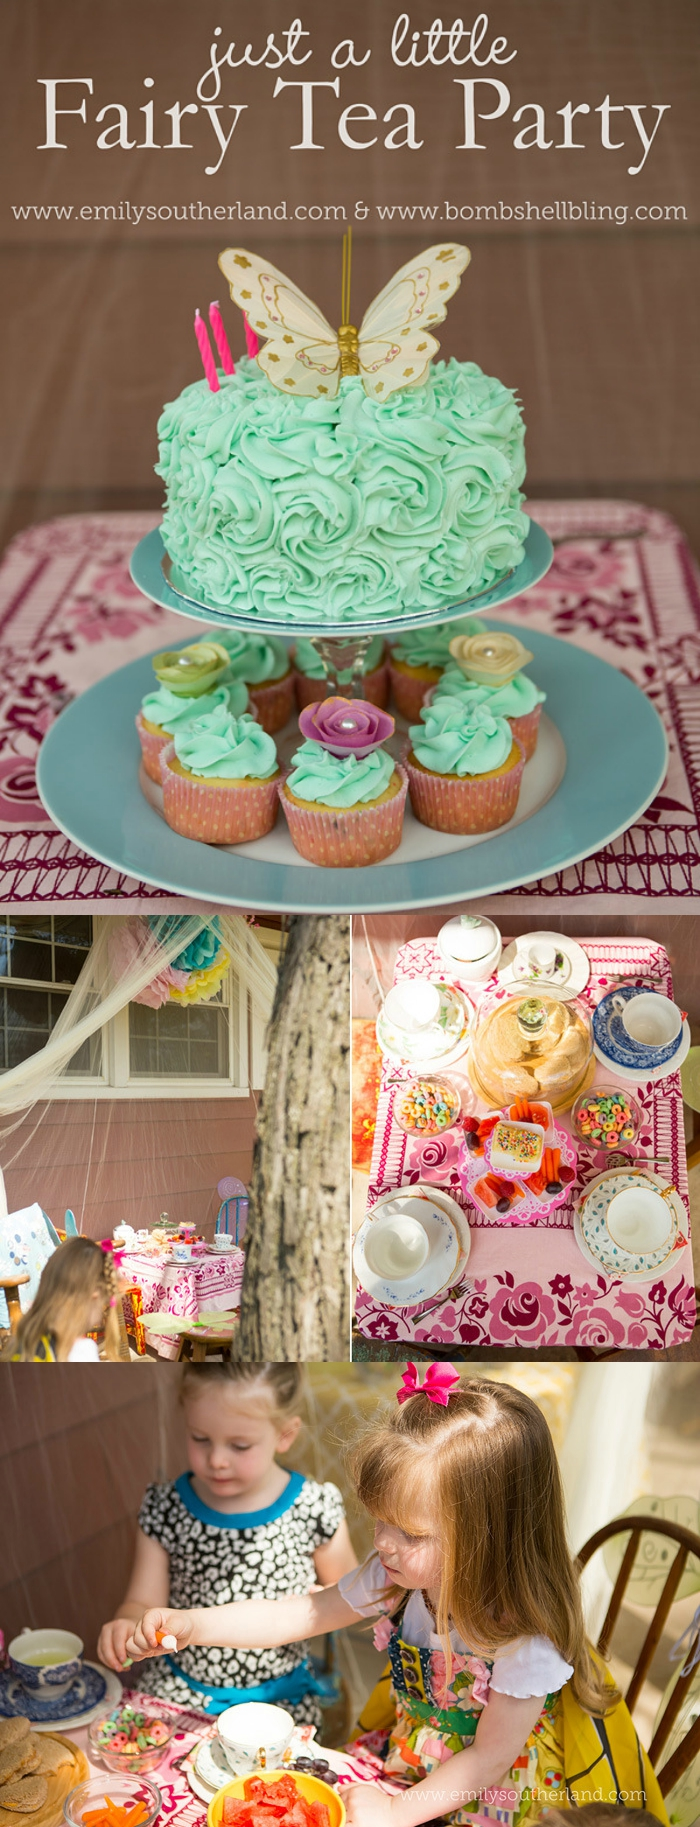 Fairy Tea Party for Little Girls